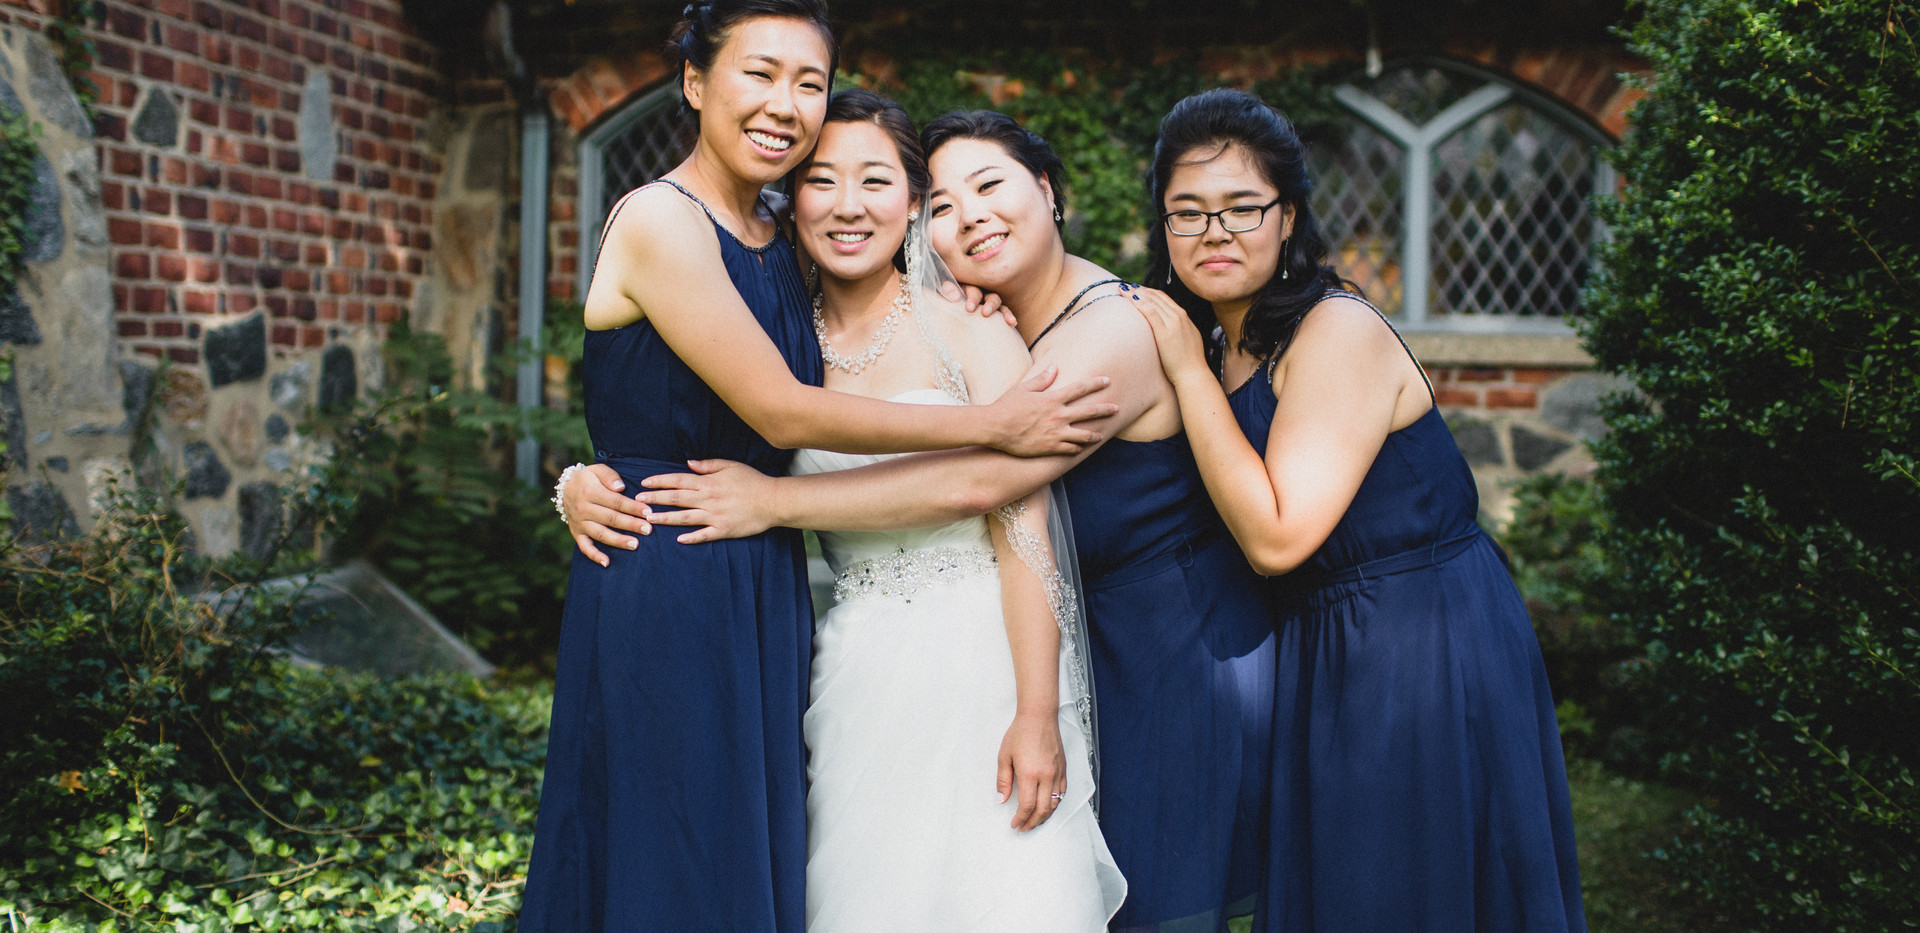 bridesmaids.jpeg